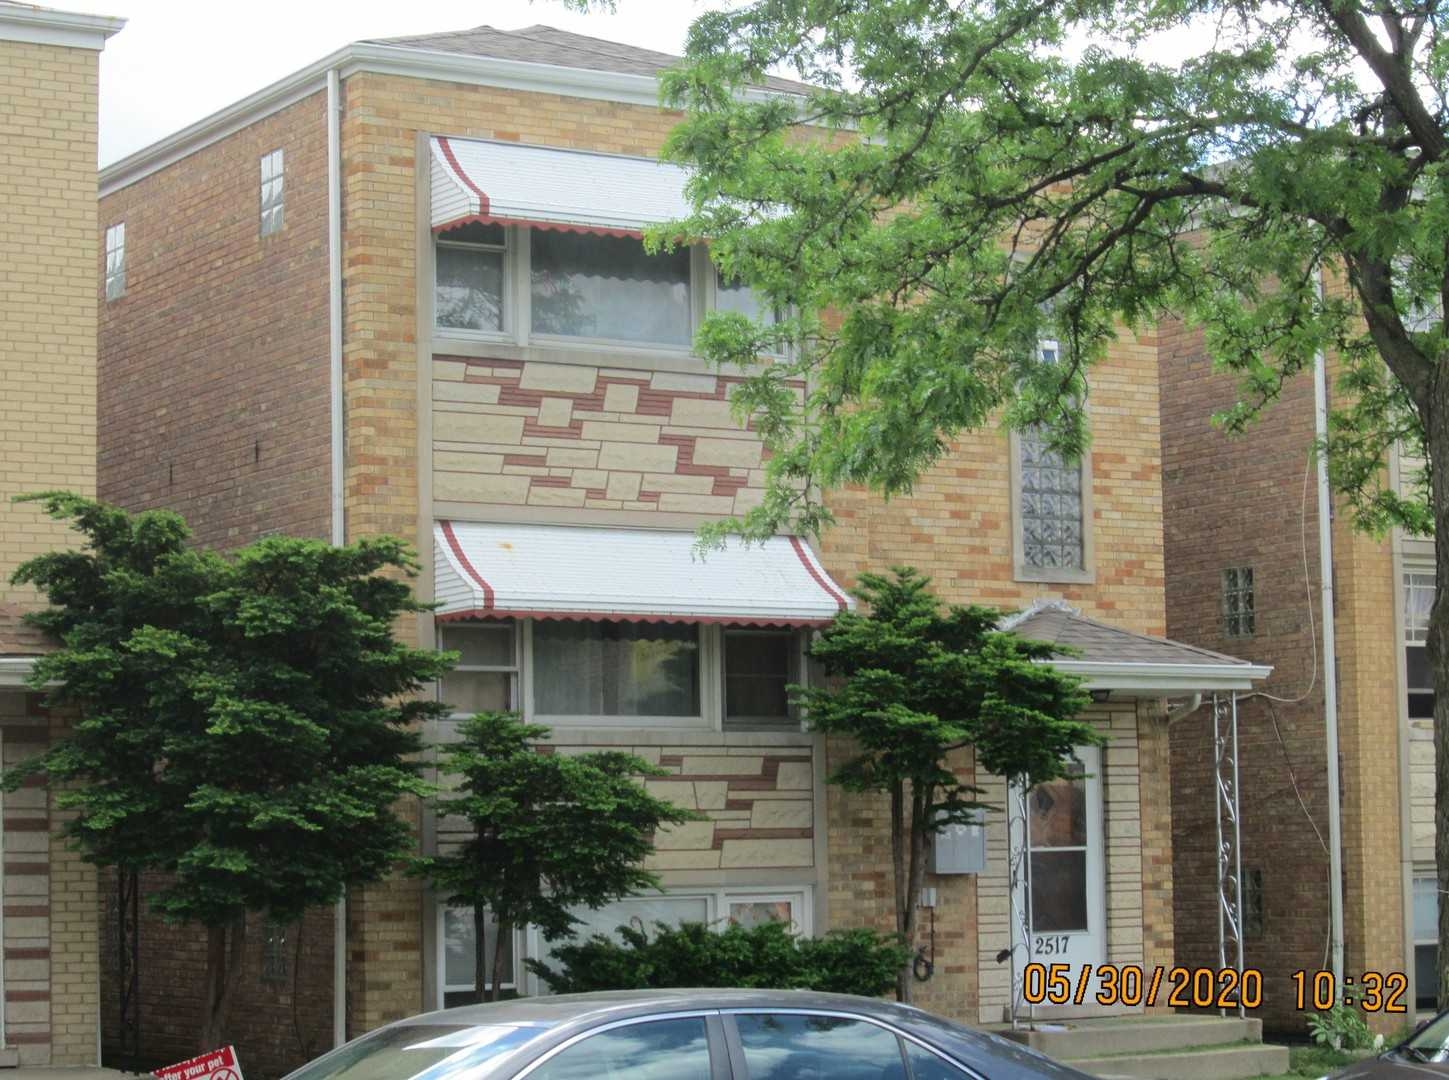 2517 Laramie ,Chicago, Illinois 60639